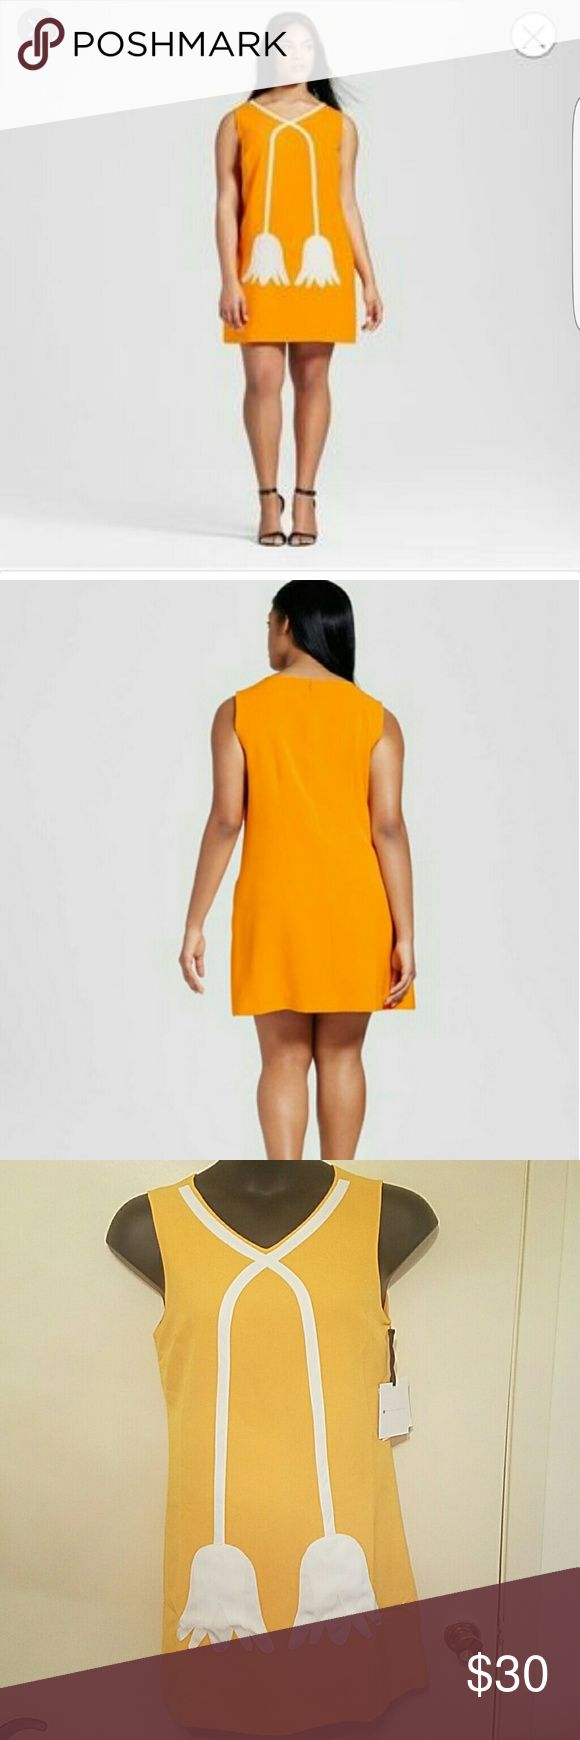 Nwt Victoria Beckham yellow tulip dress Med Zip up the back Length 33 Shell 94% polyester 6% spandex Lining 100% polyester Victoria Beckham for Target Dresses